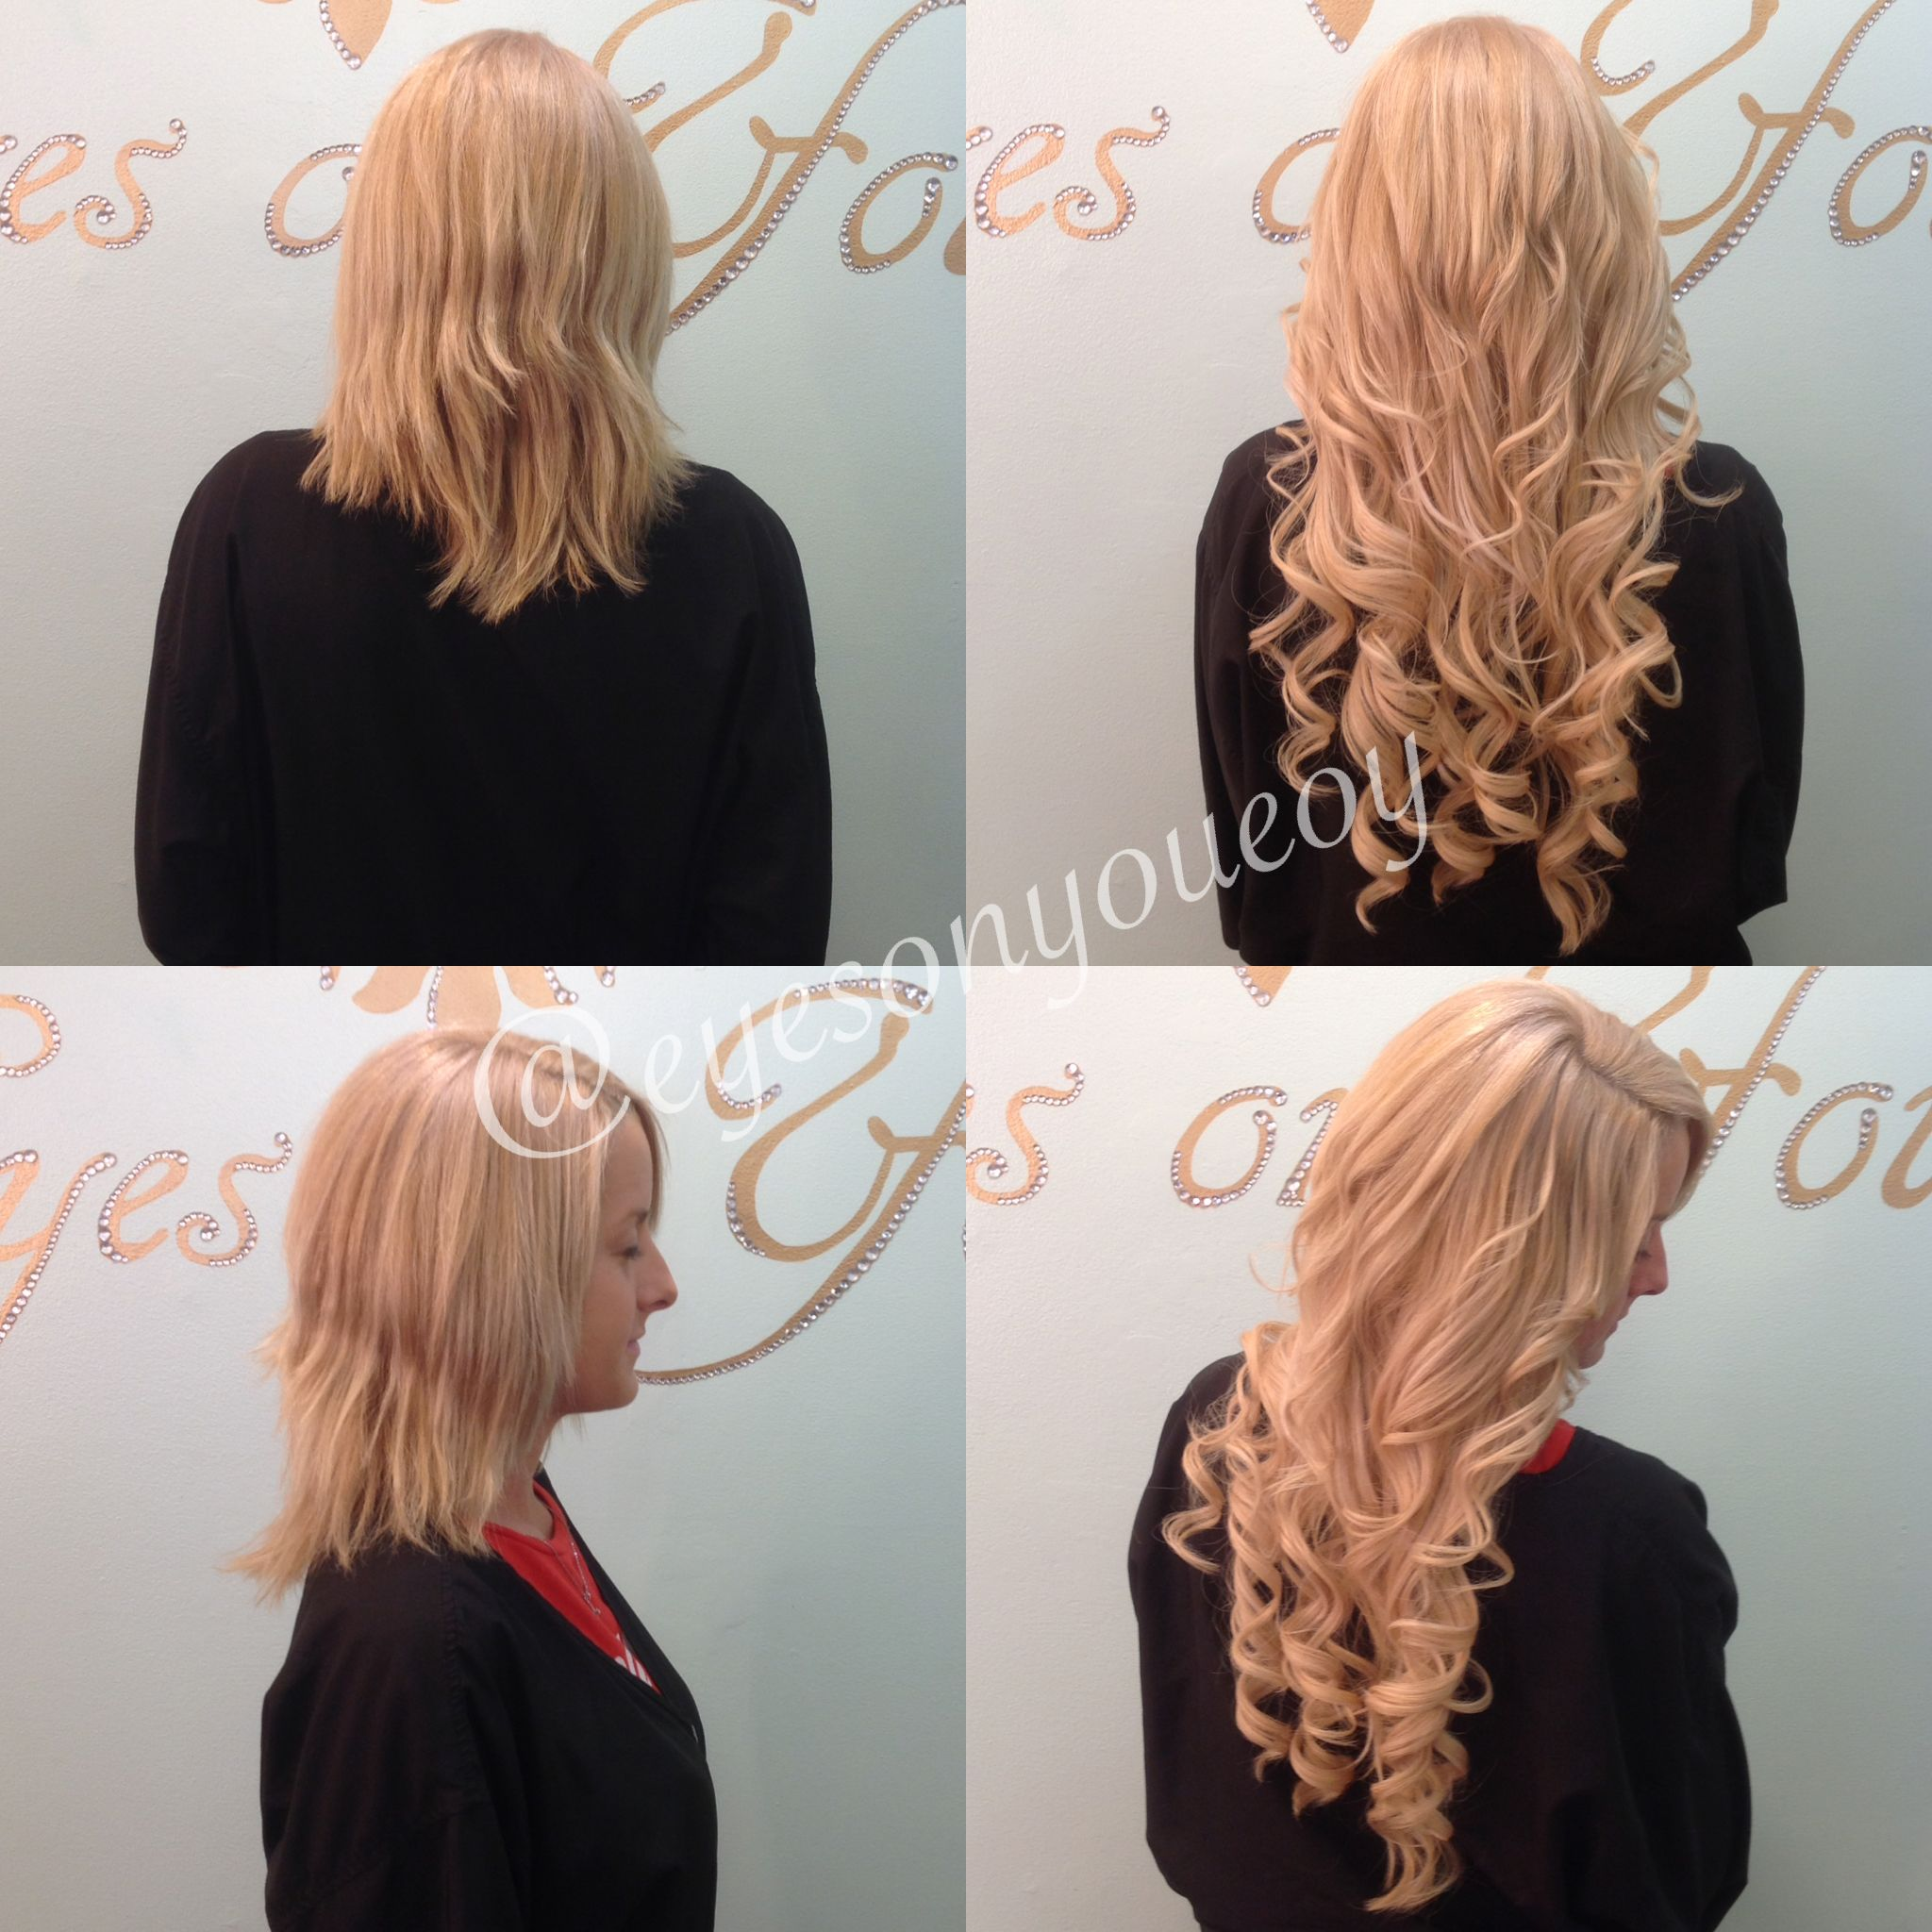 Individual Keratin Bond Hair Extensions To Add Length And Volume